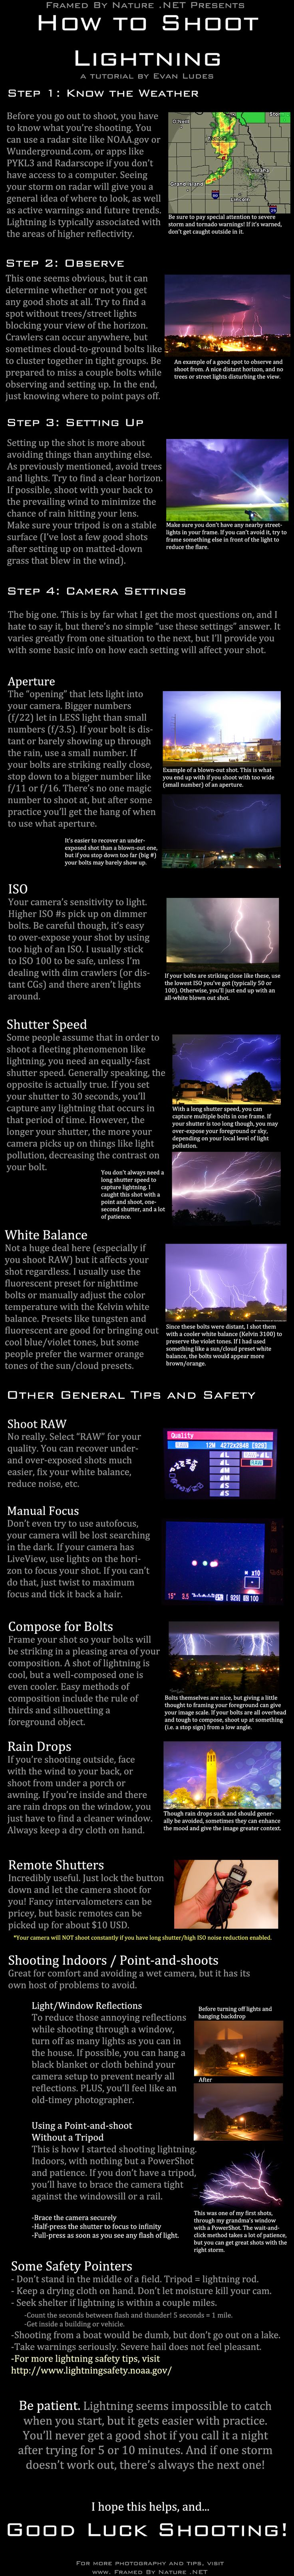 Lightning Photography Tutorial by FramedByNature.deviantart.com on @deviantART